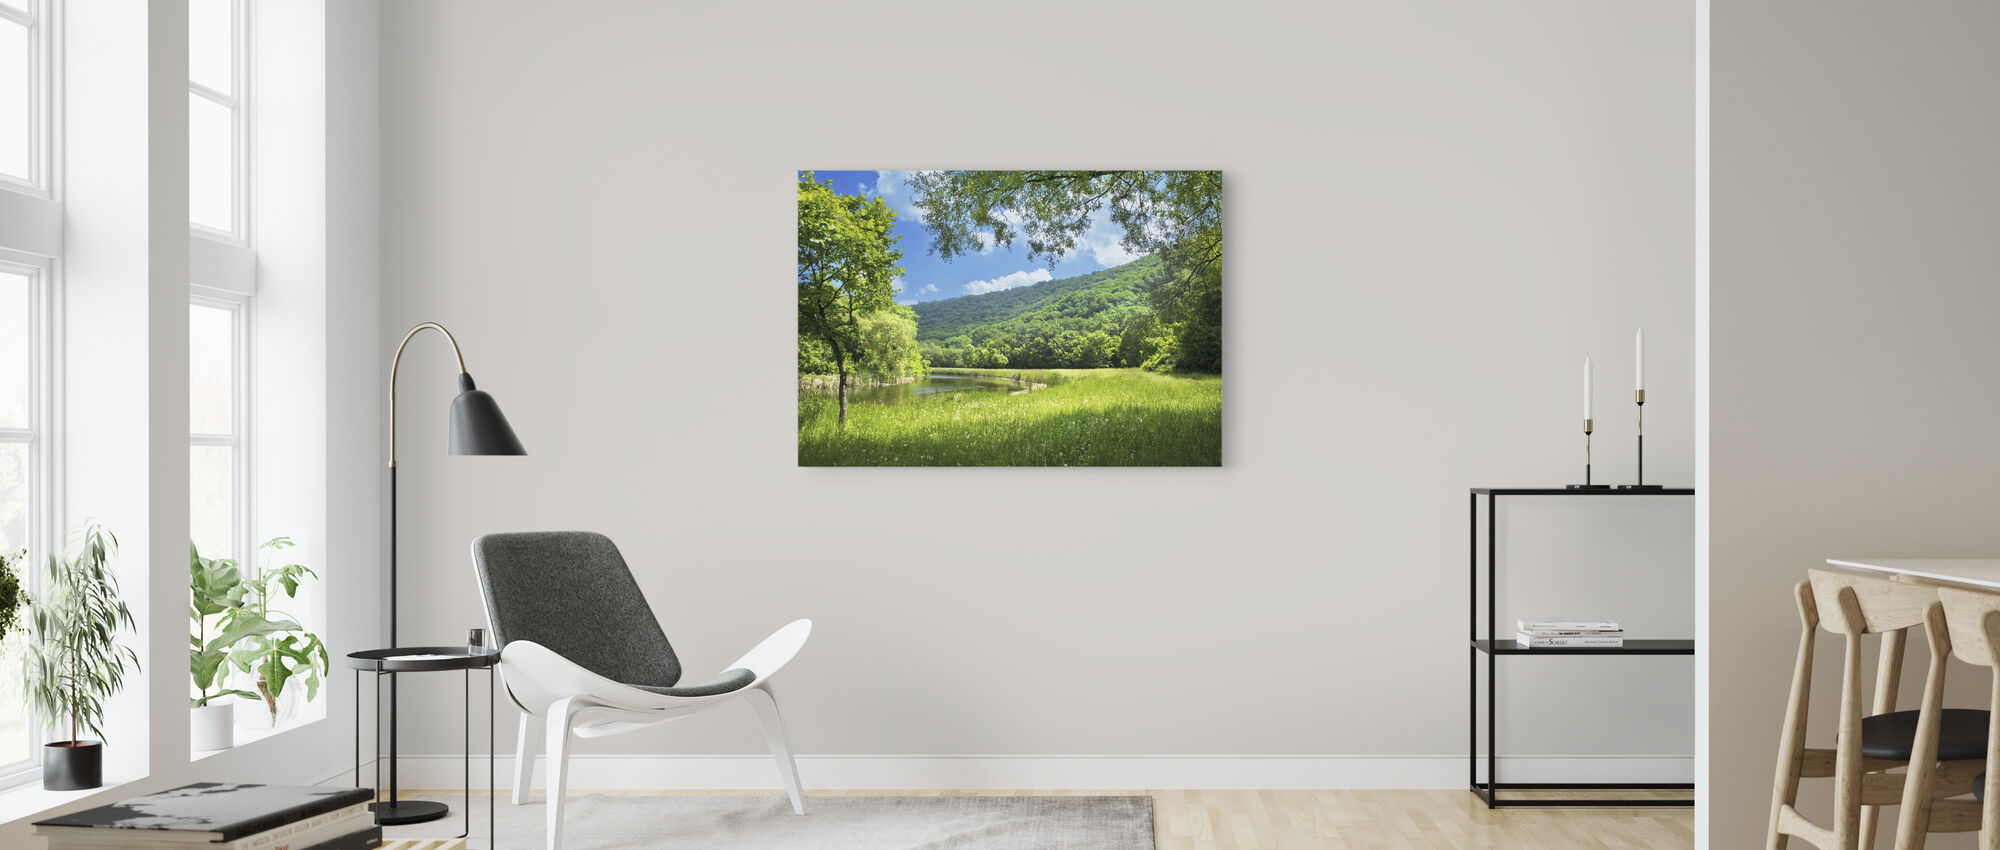 Summer Landscape with River - Canvas print - Living Room